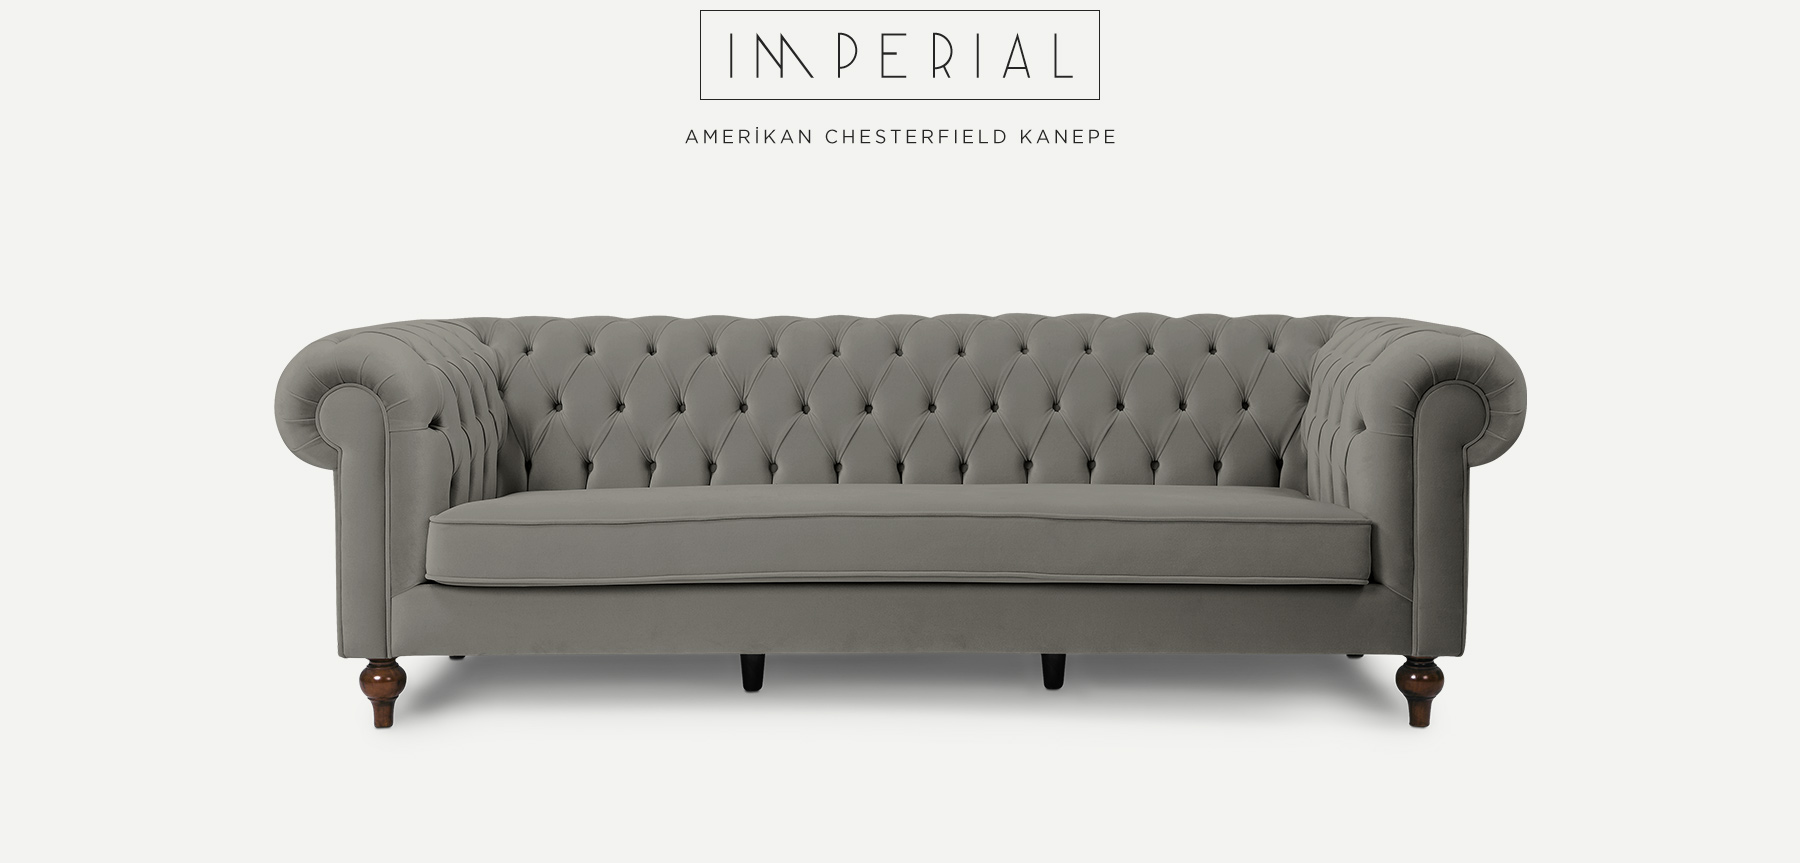 IMPERIAL Üçlü Gri Amerikan CHESTERFIELD'in resmi